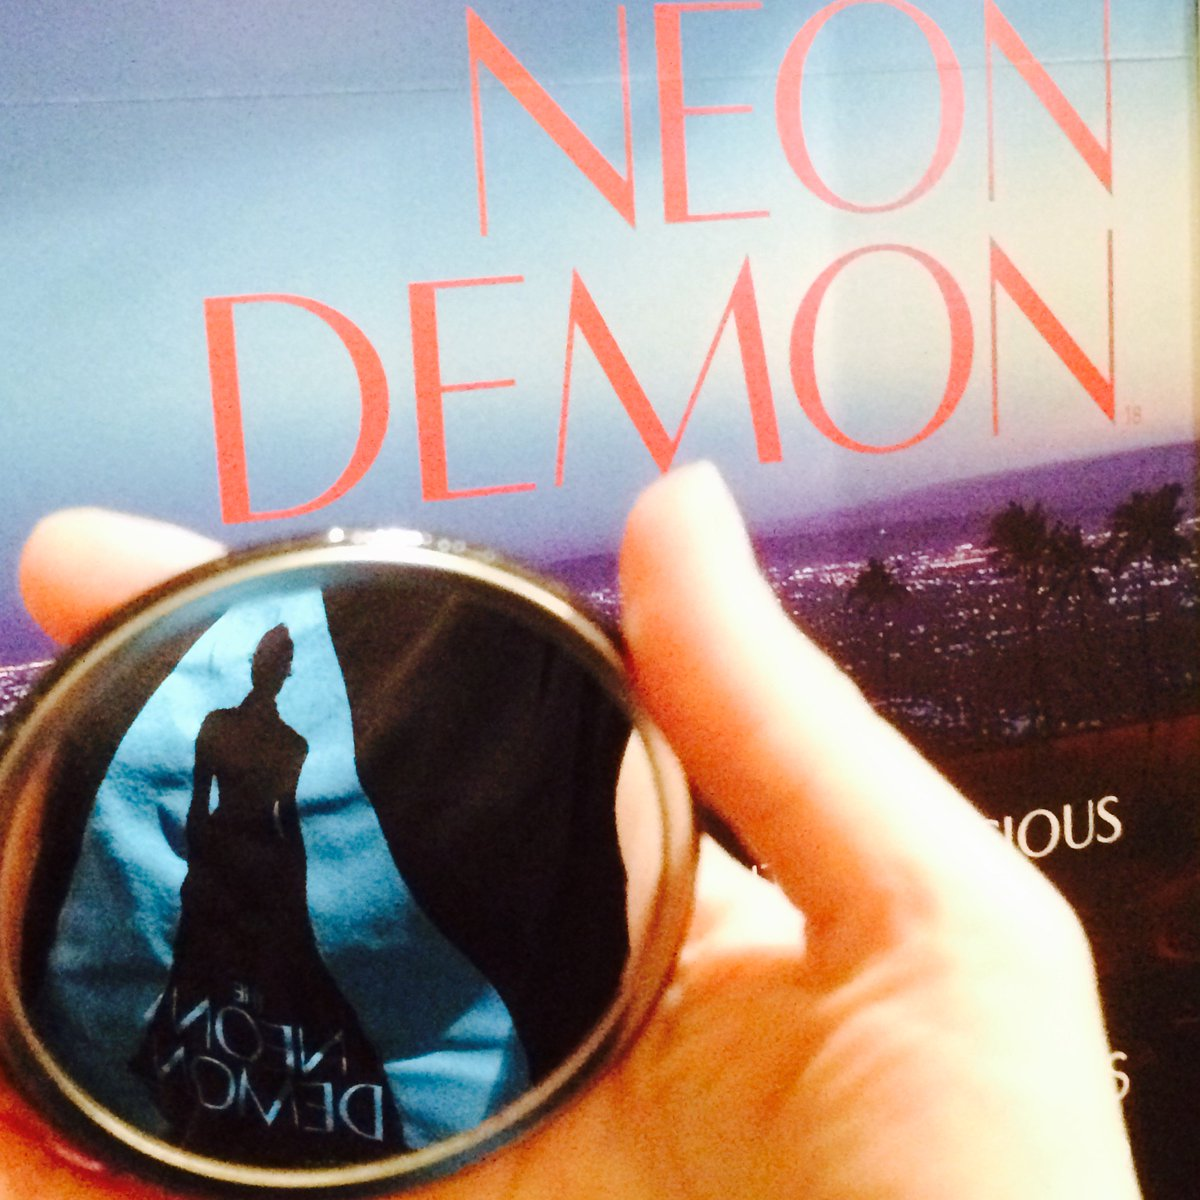 #TheNeonDemon opens tomorrow and we have some gorgeous T-shirts and beautiful hand mirrors to give away. RT to win! https://t.co/7yuyaVy080